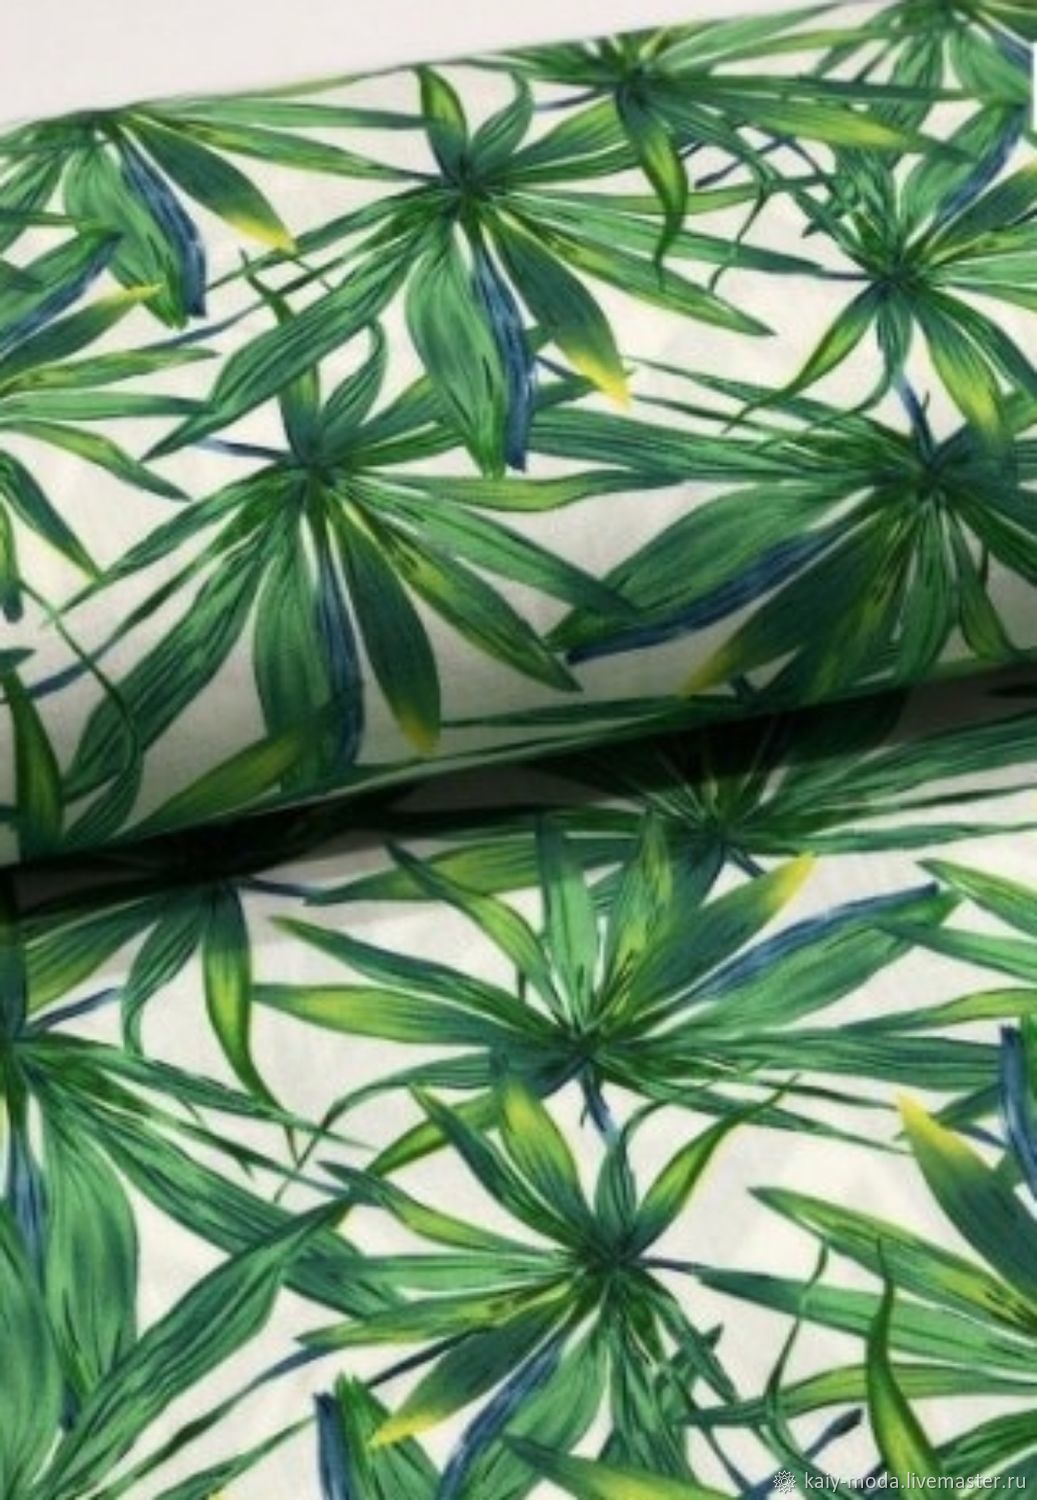 Flax Stretch Green Leaves, Fabric, Moscow,  Фото №1